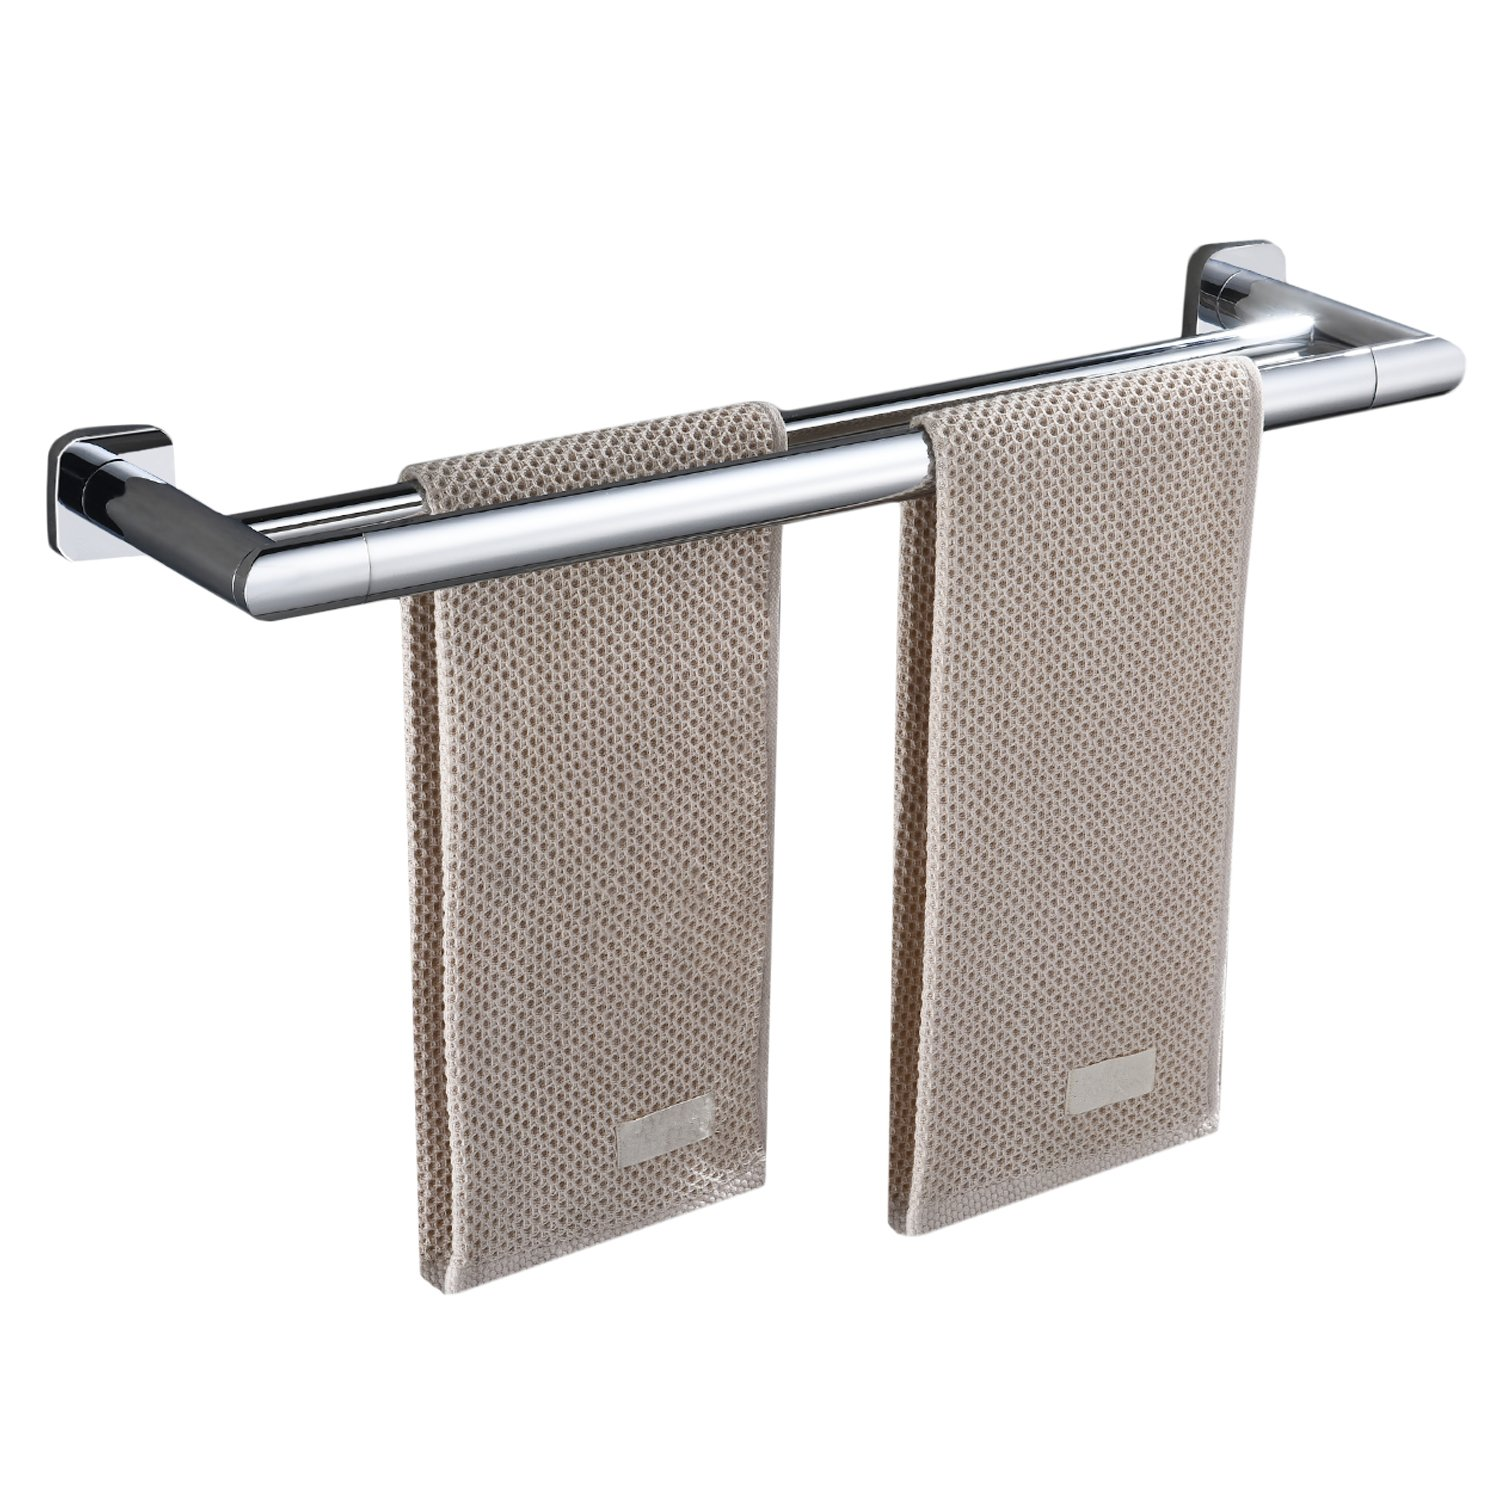 Homovater Wall Mounted Bathroom Towel Bar Rail SUS Stainless Steel Towel Rail in Chrome Finish Single Layer